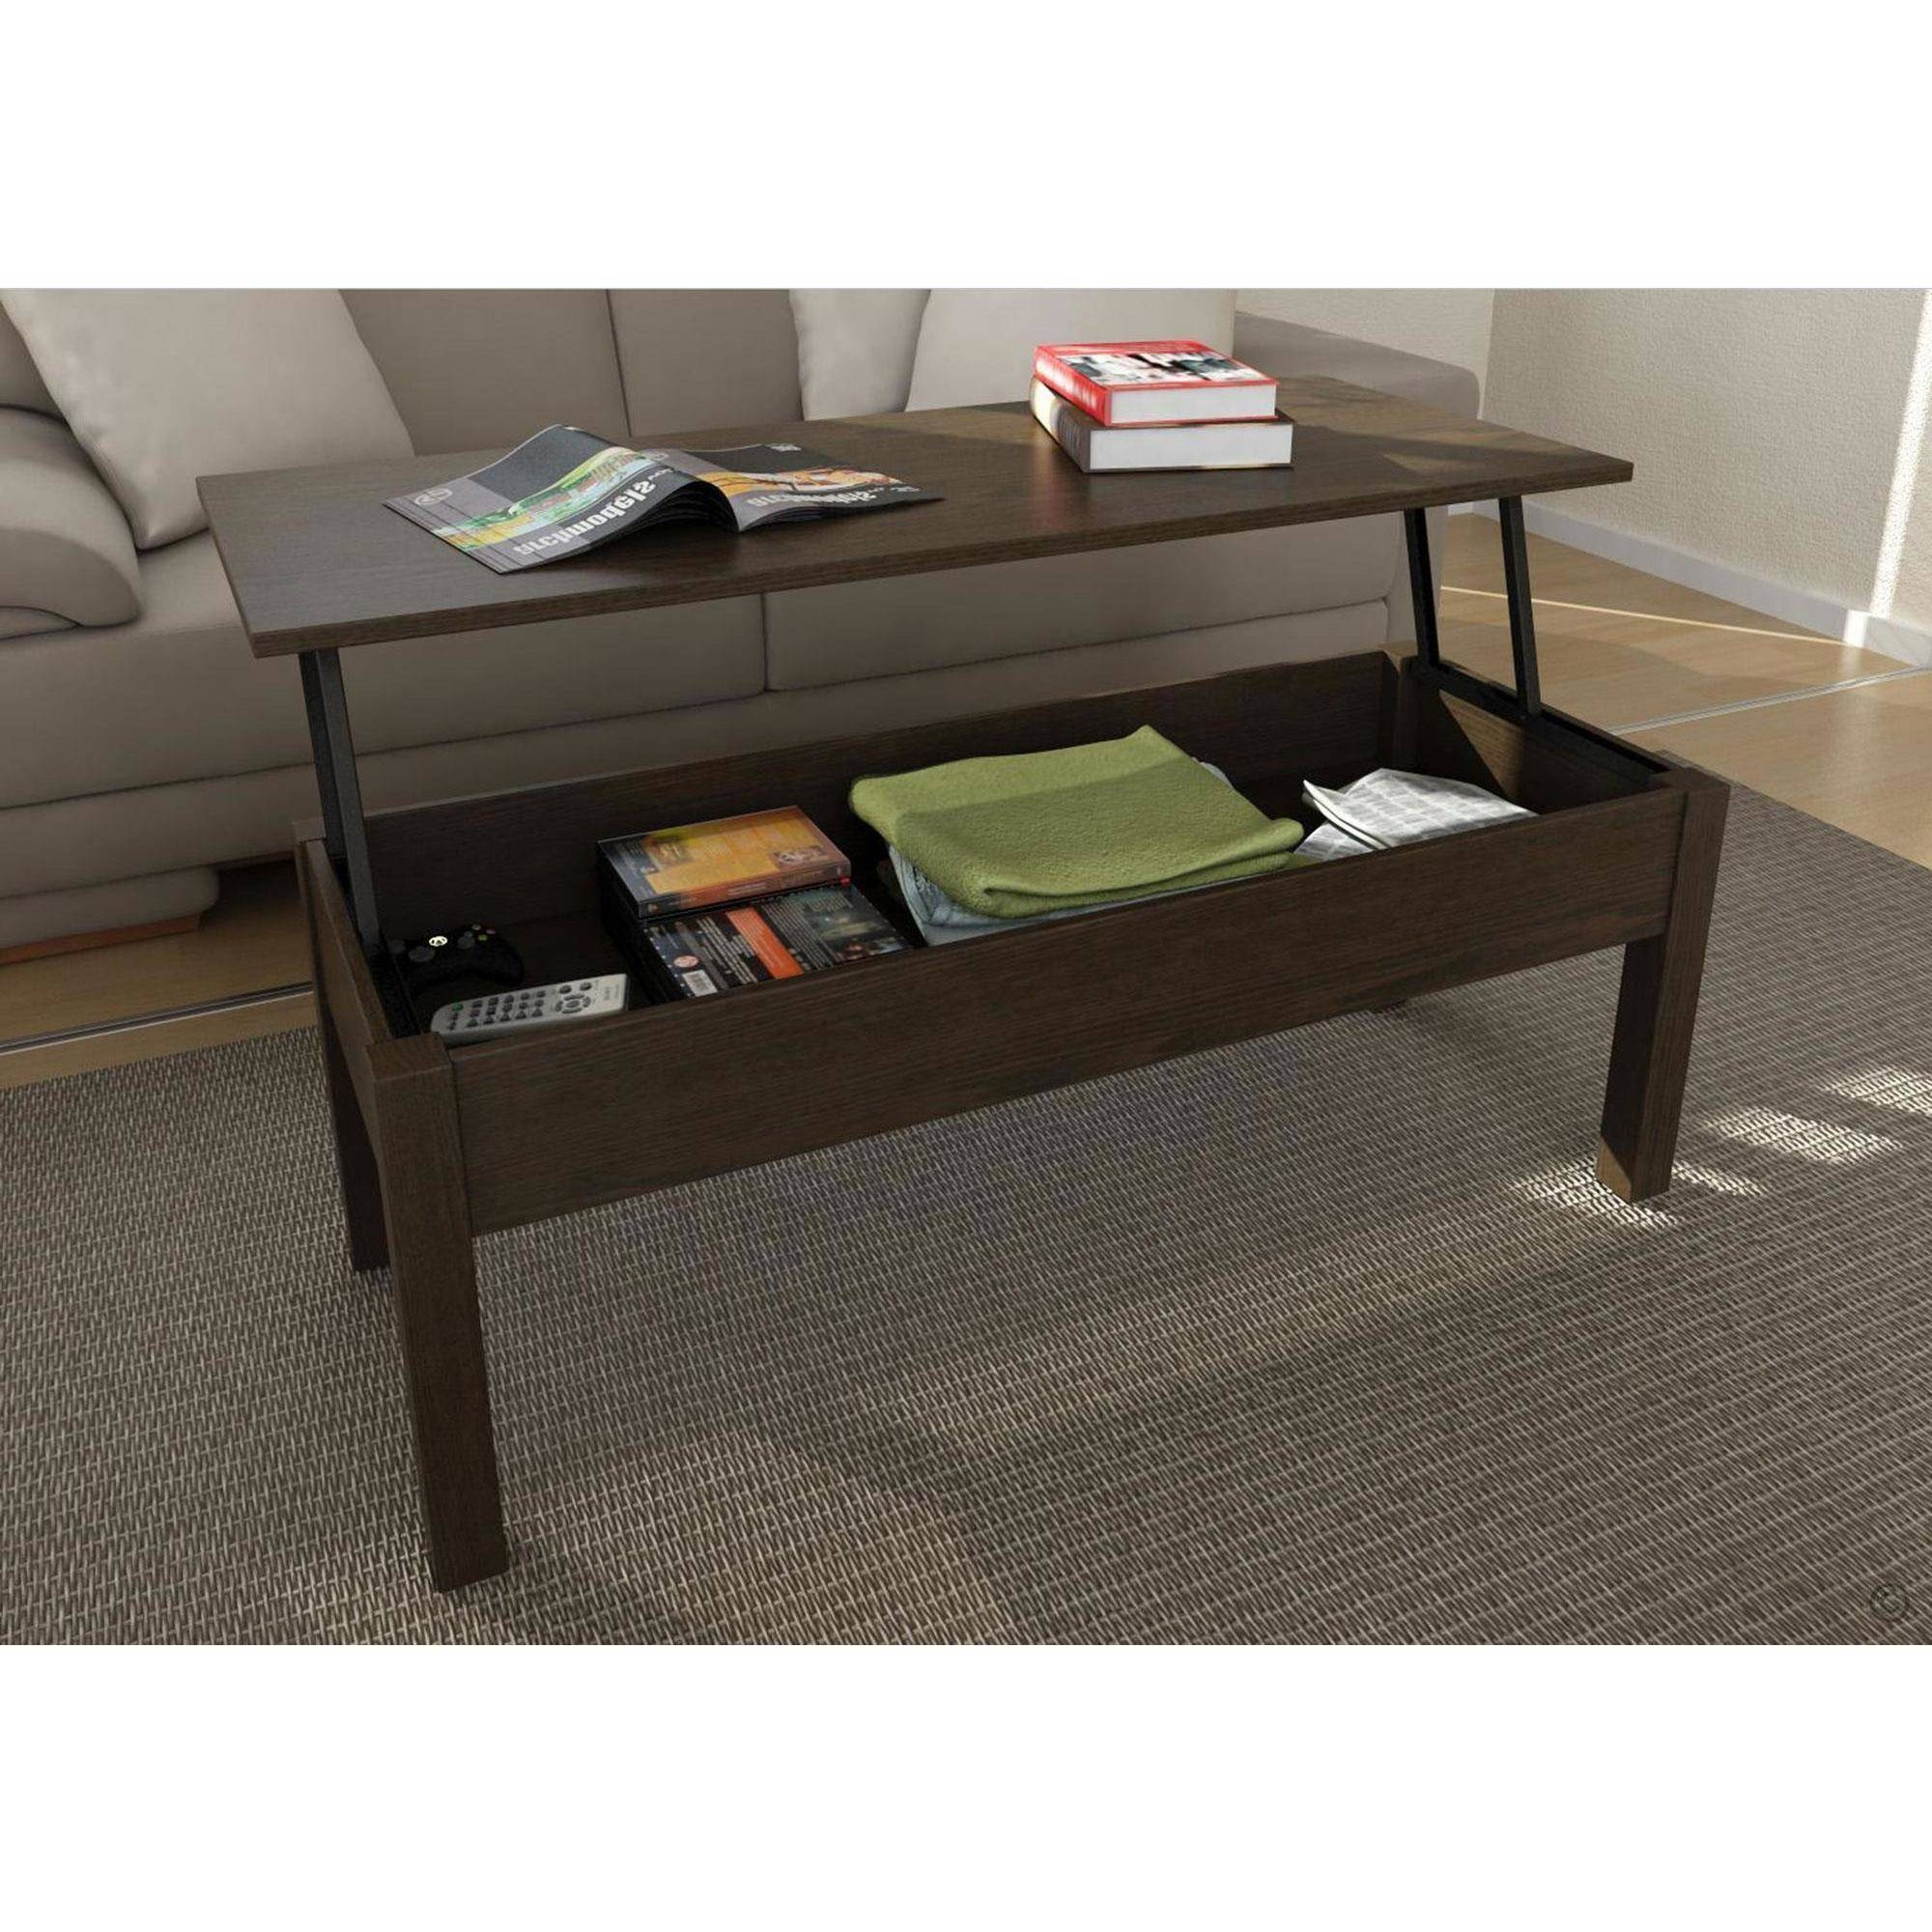 Mainstays Lift-Top Coffee Table, Multiple Colors - Walmart pertaining to Coffee Tables With Raisable Top (Image 18 of 30)